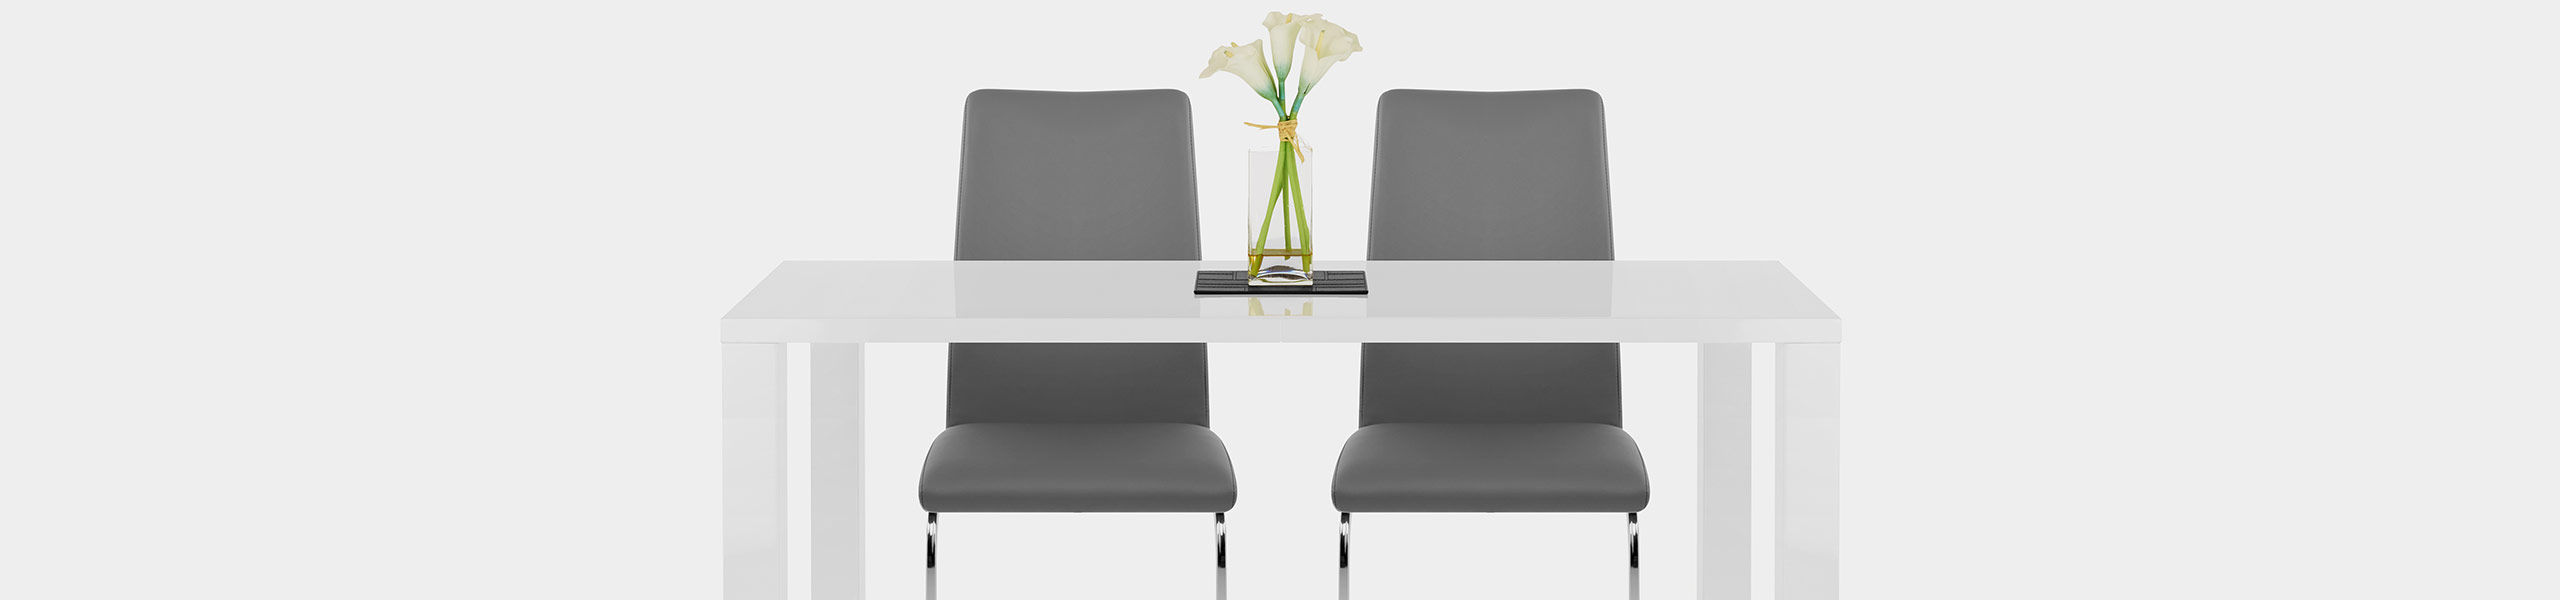 Jordan Dining Chair Charcoal Video Banner